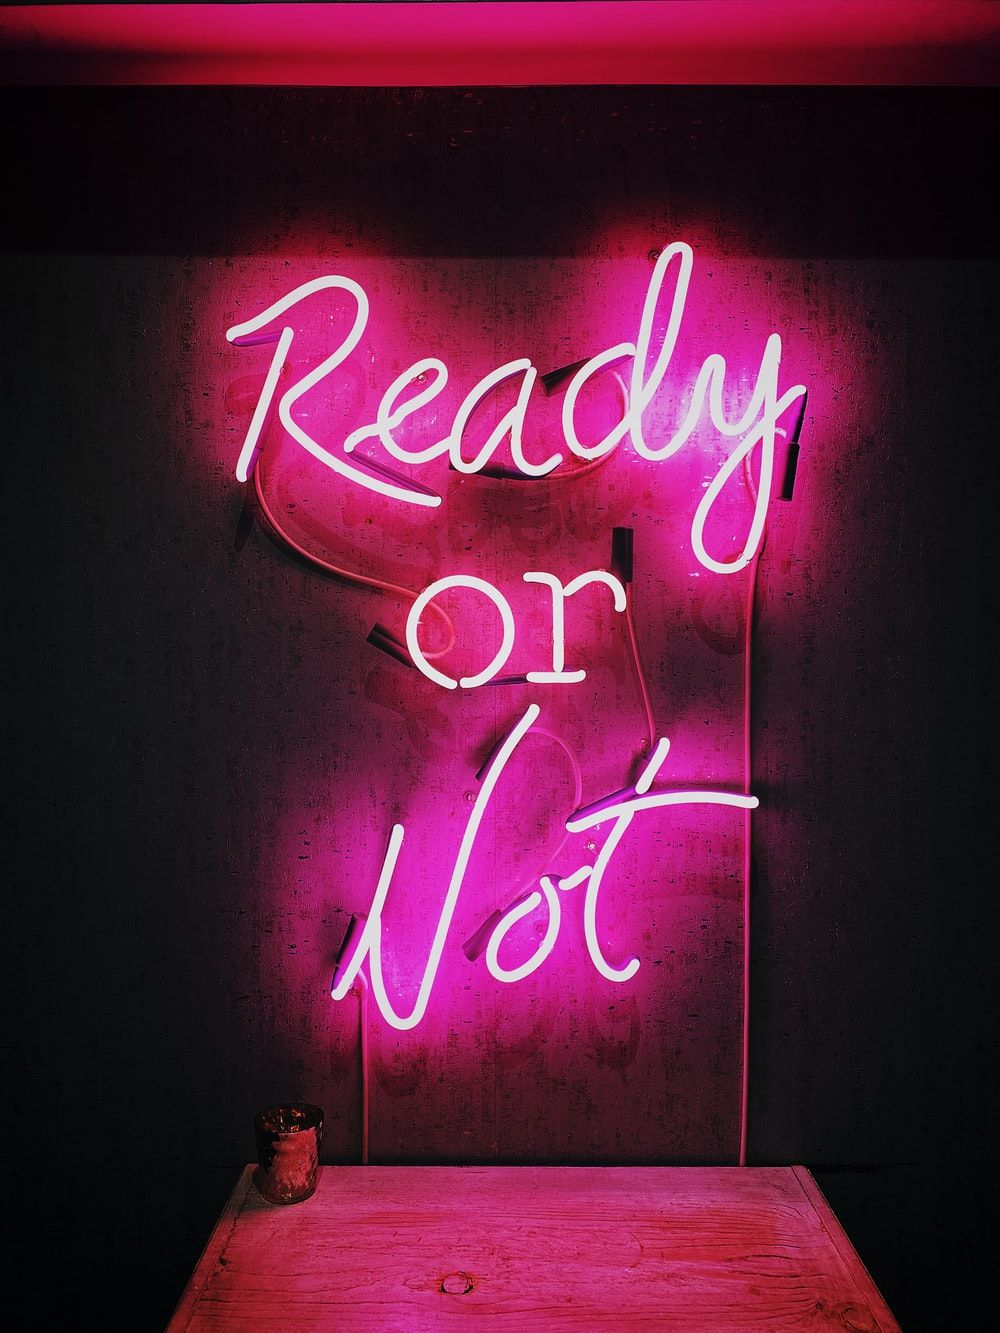 Neon Pink Aesthetic Wallpapers Top Free Neon Pink Aesthetic Backgrounds Wallpaperaccess Pink collage wallpaper made by me please give credit if you are going to use them i appreciate it and the love tag me. neon pink aesthetic wallpapers top